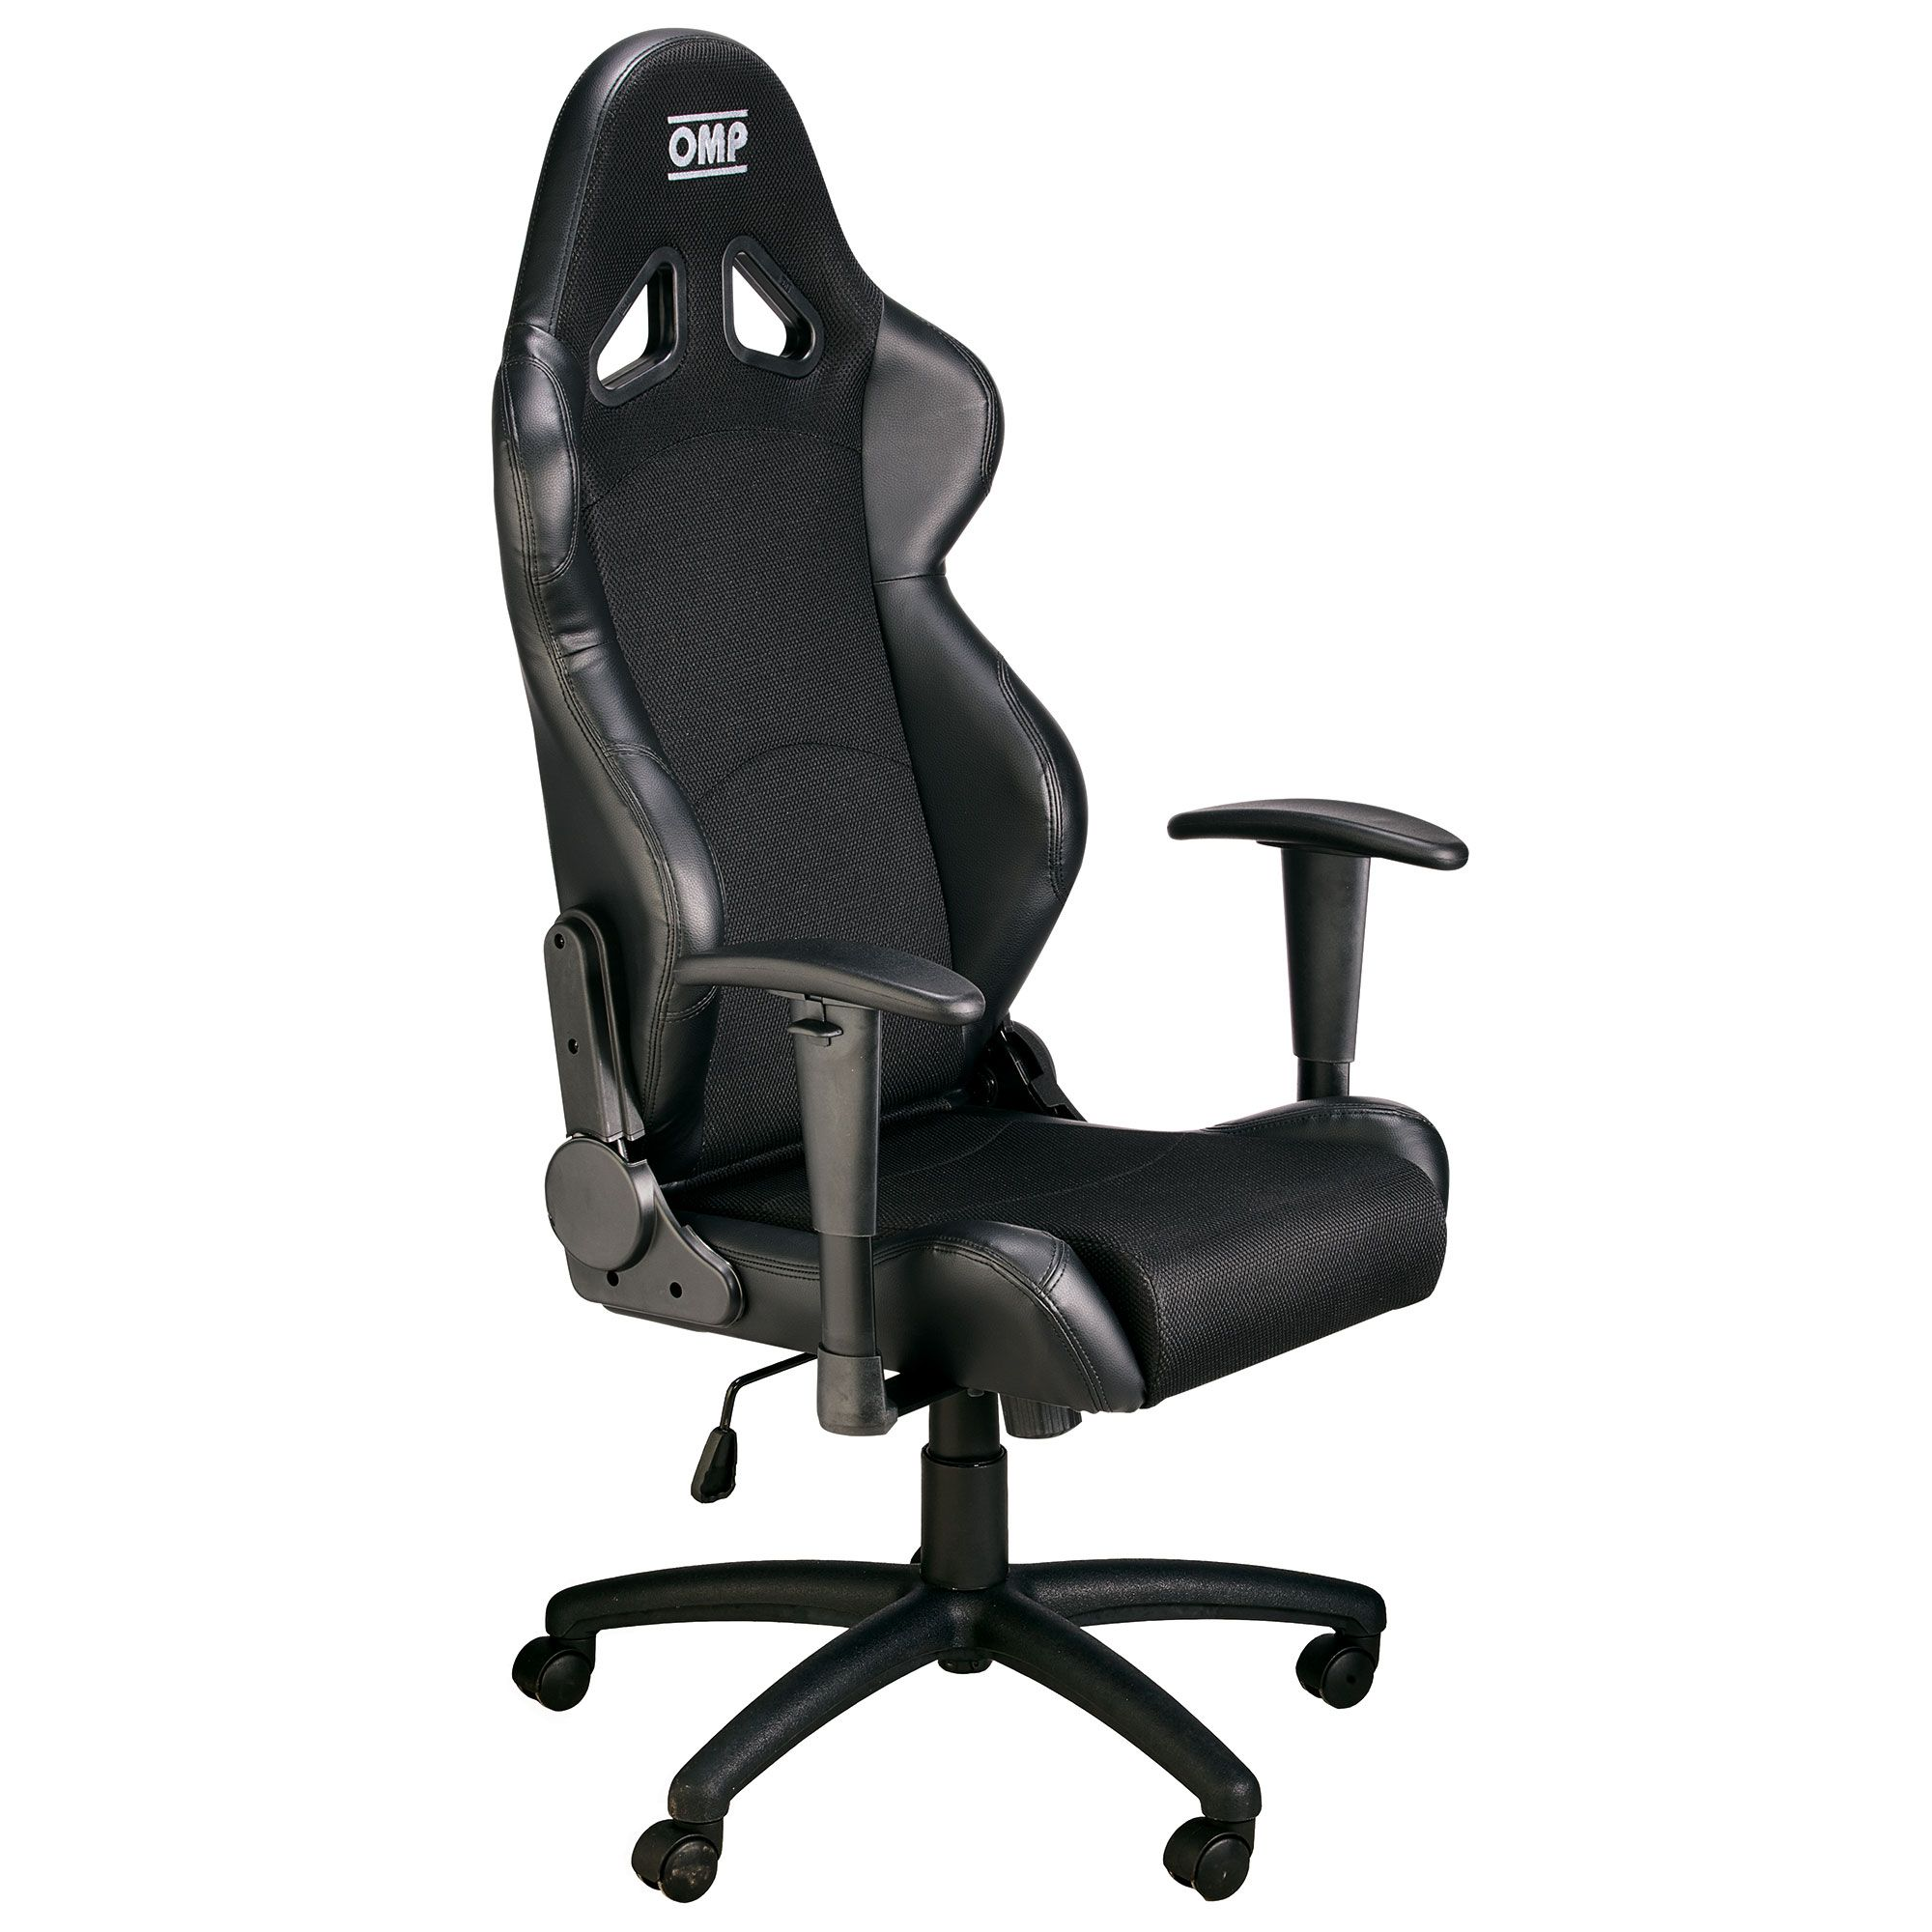 Racing Seat Office Chair Details About Omp Racing Seat Swivel Wheeled Office Chair Faux Leather Black Yellow